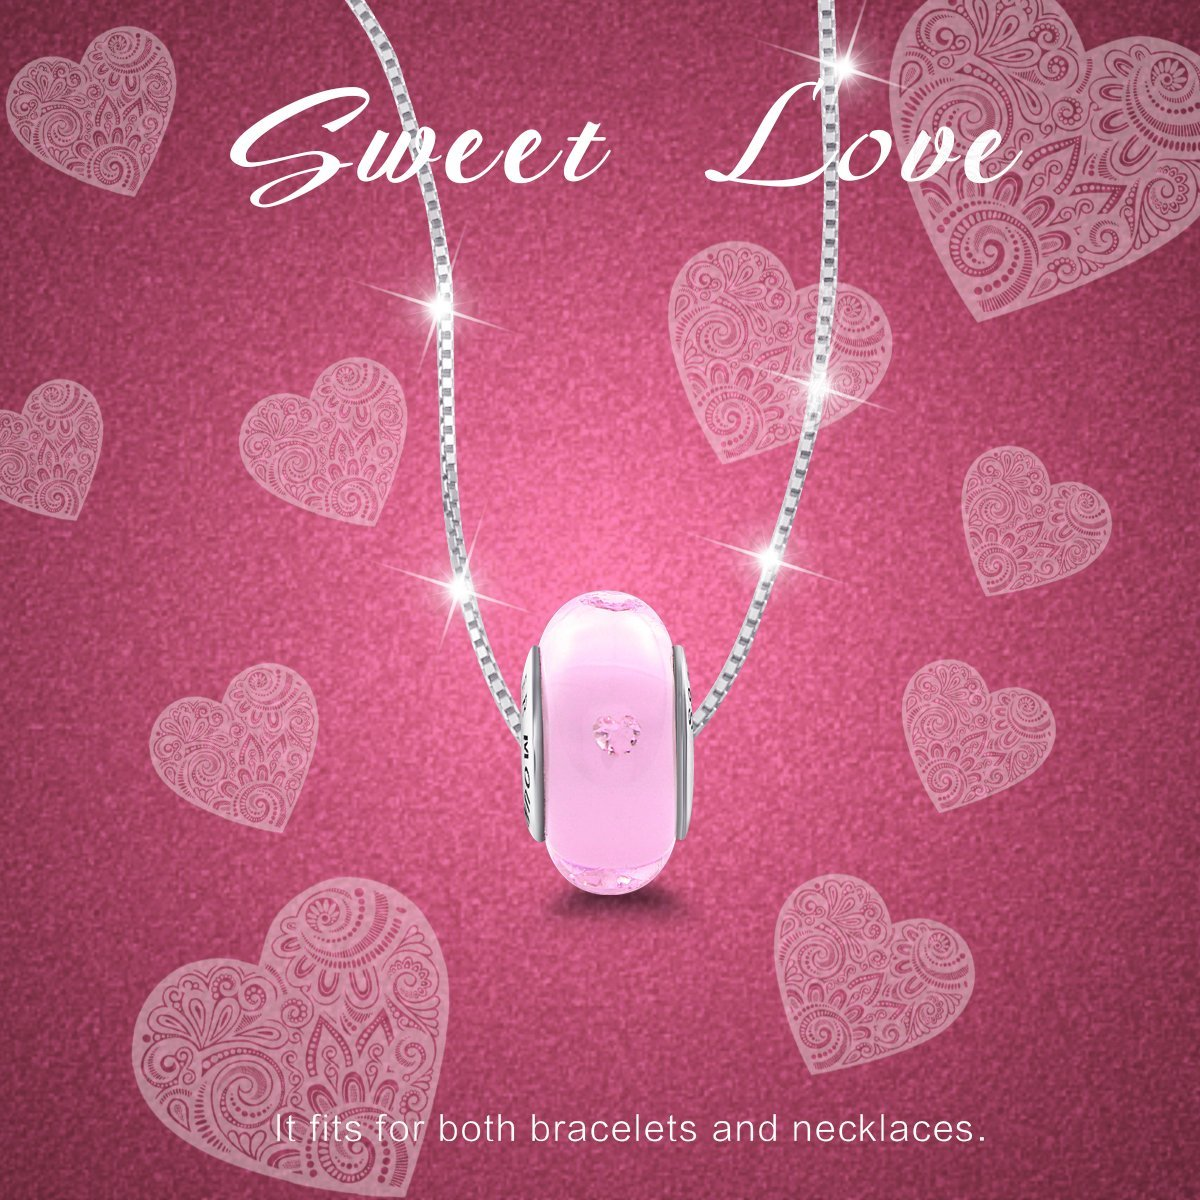 Build-in Diamond 925 Sterling Silver Hearts Pink Glass Charm for Bracelet and Necklace